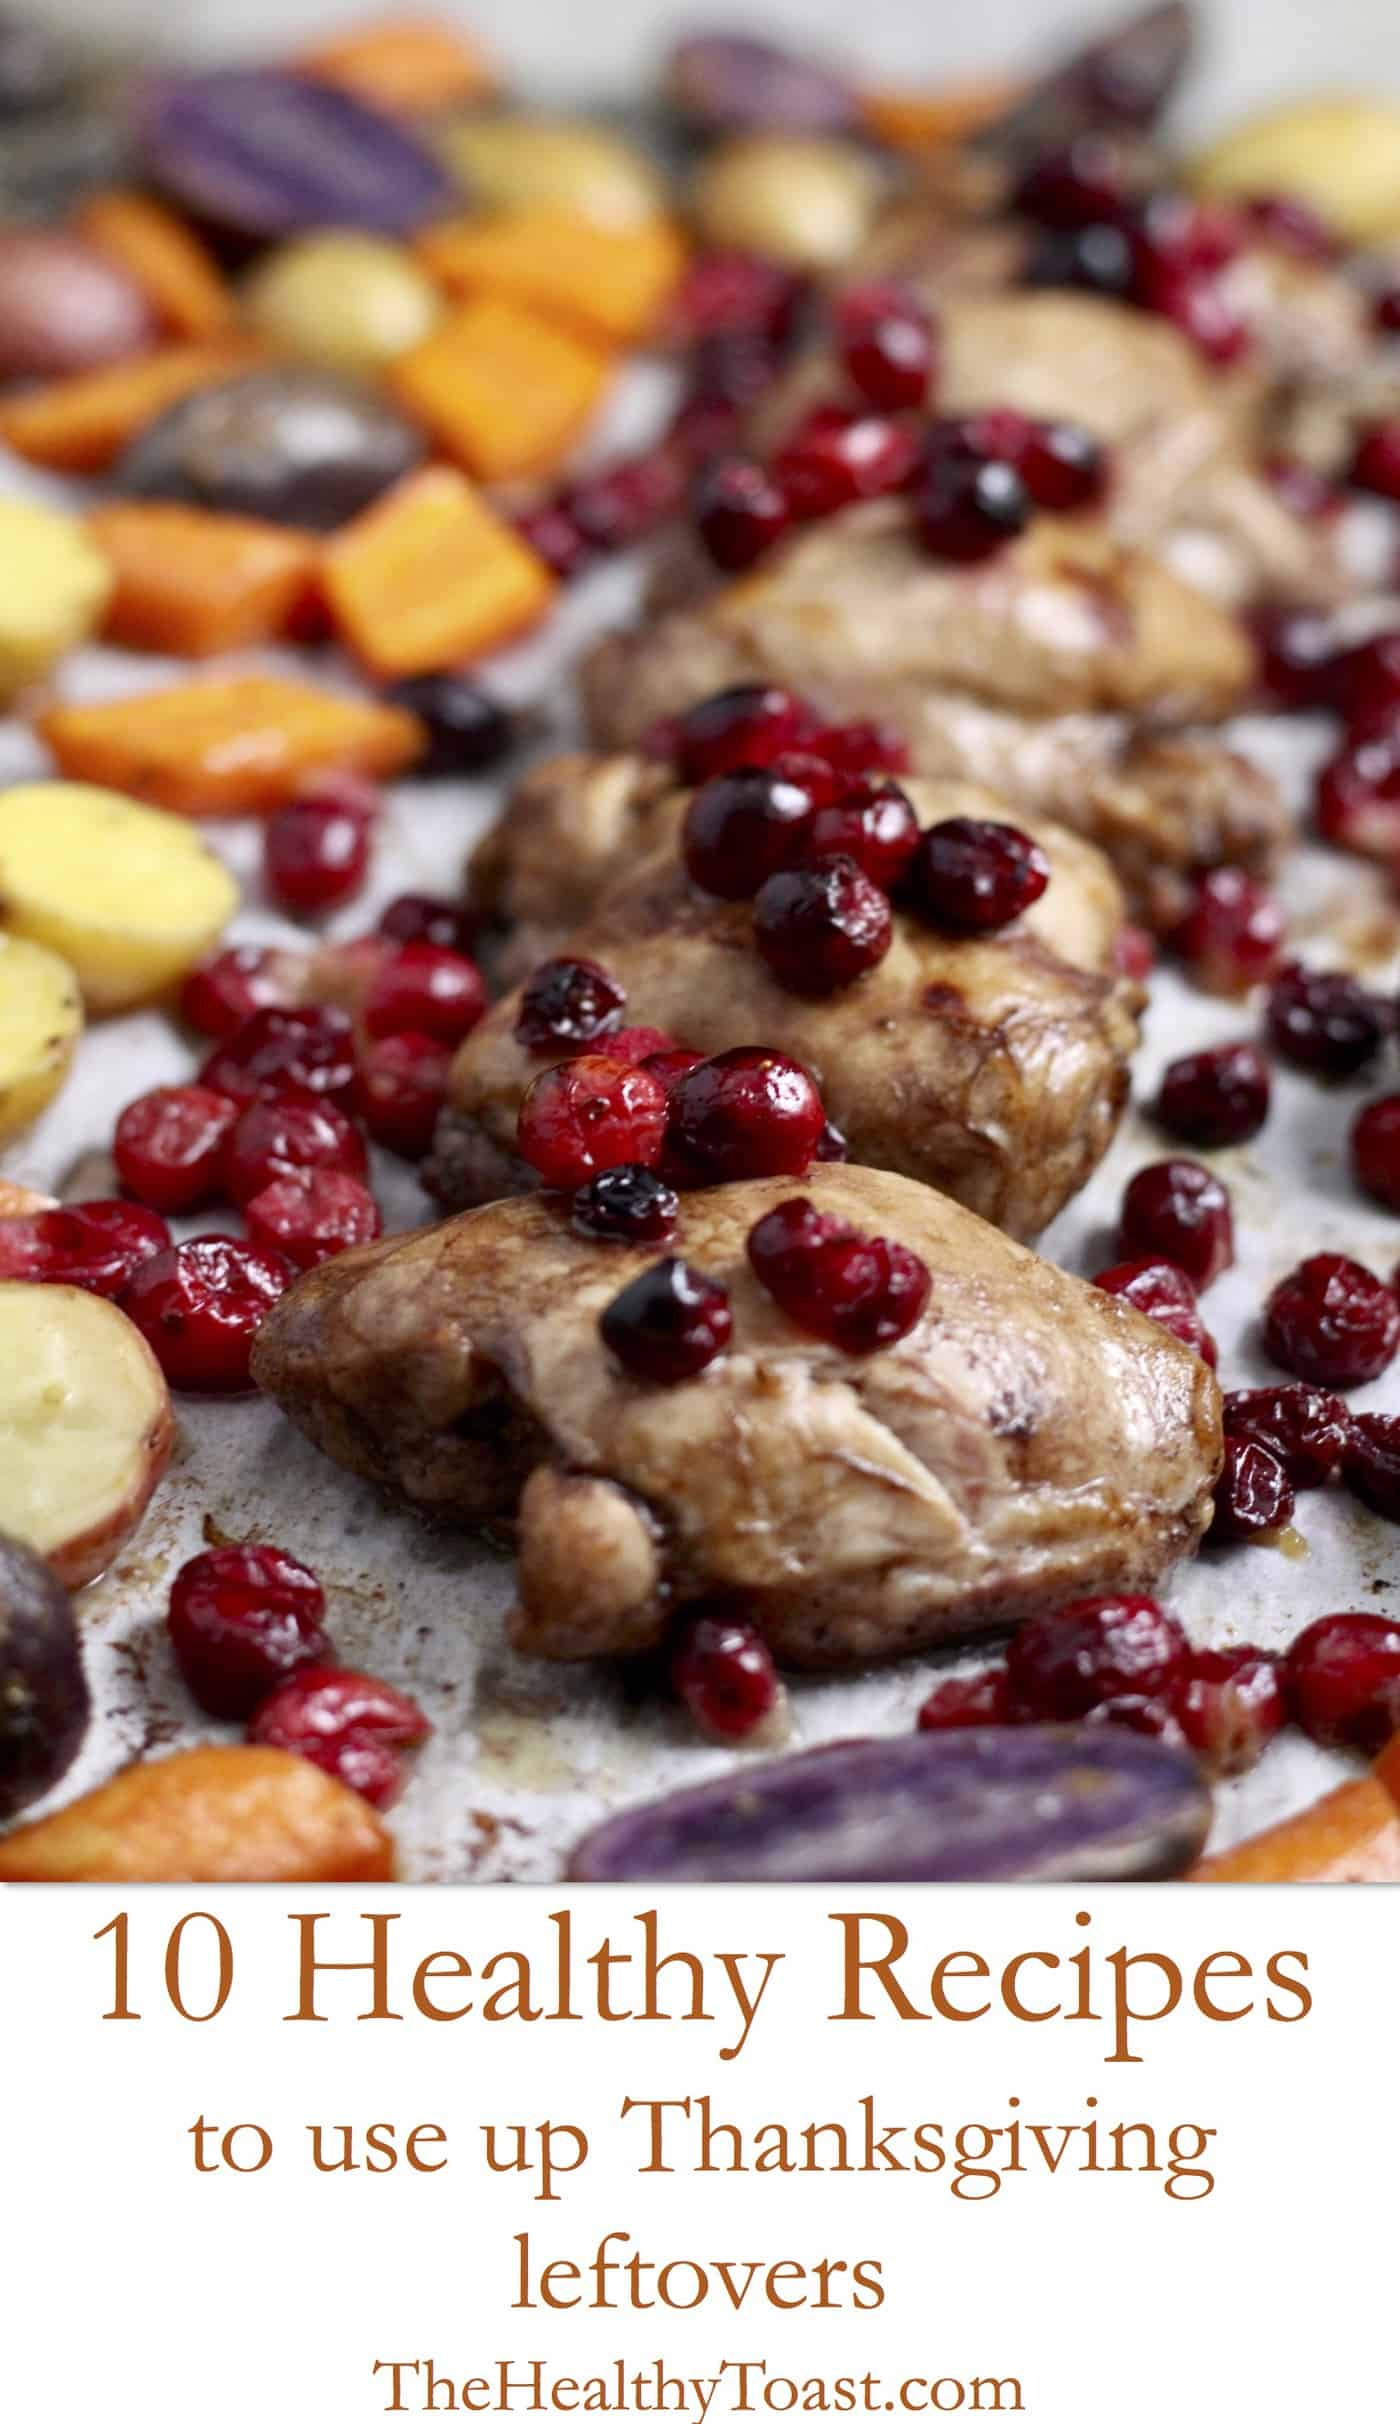 10 Healthy Recipes to Use Up Thanksgiving Leftovers